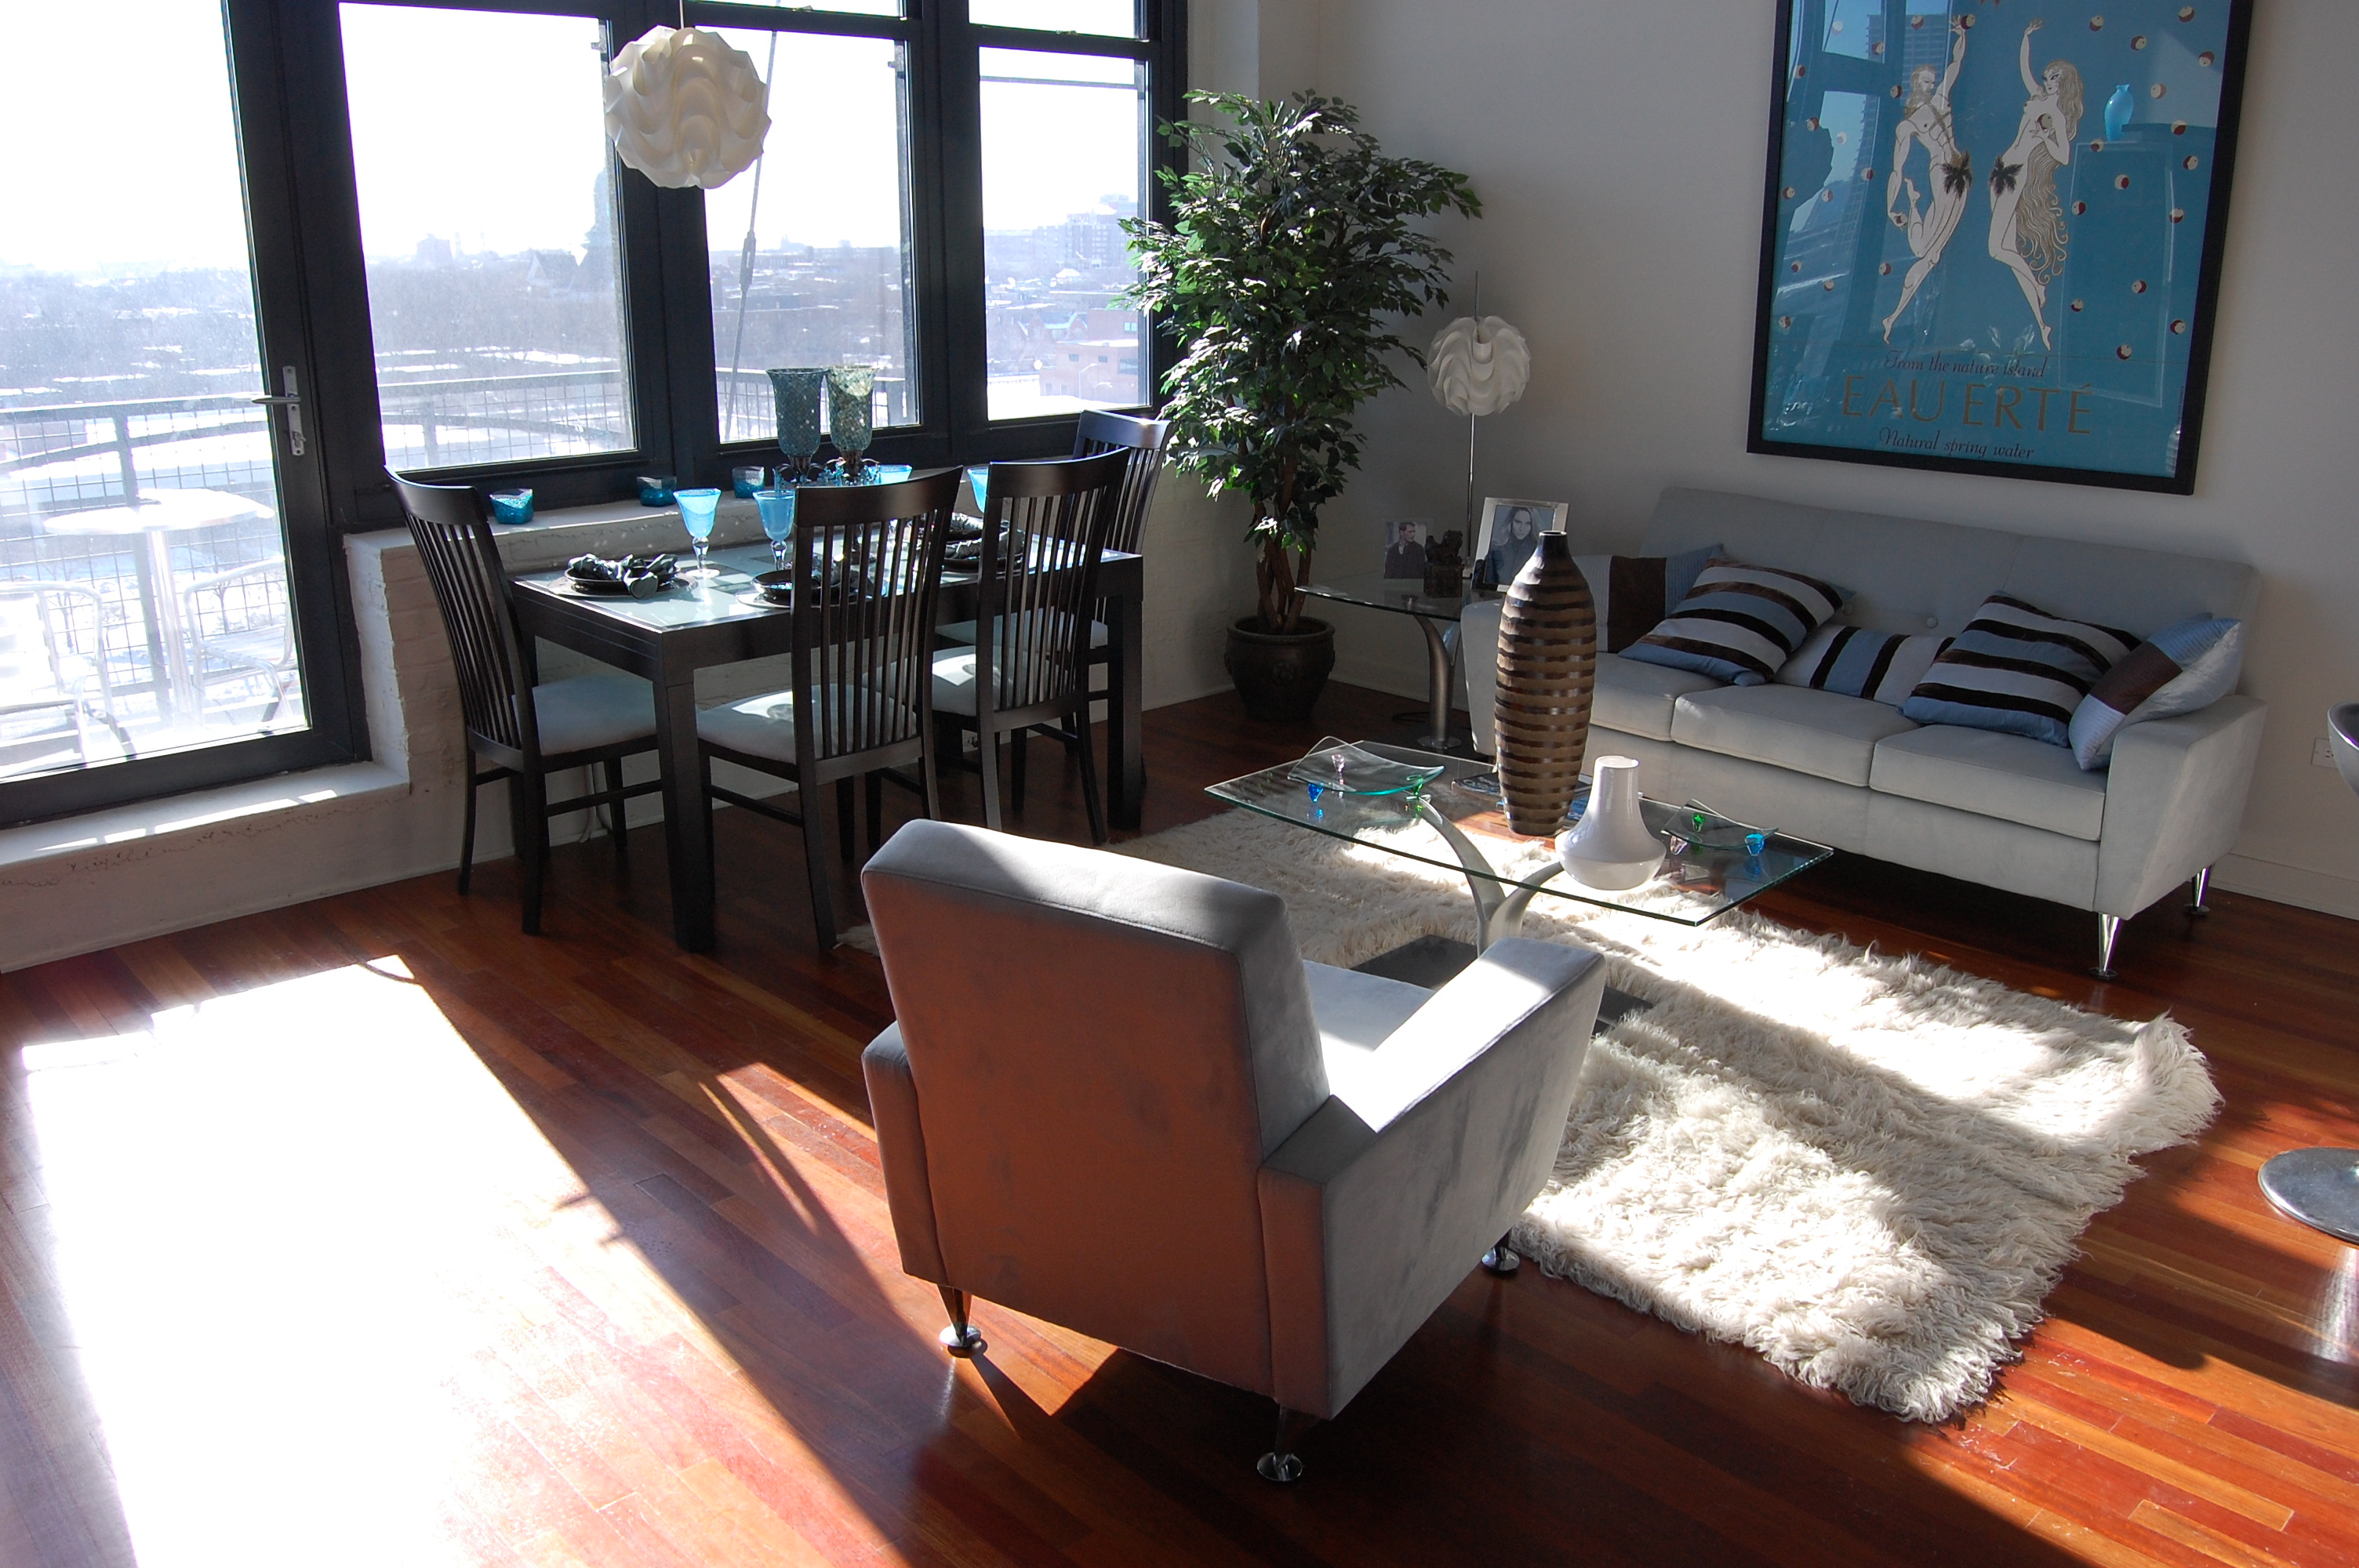 Furnished model at VB1224, a loft conversion at 1224 W Van Buren St in the West Loop, Chicago